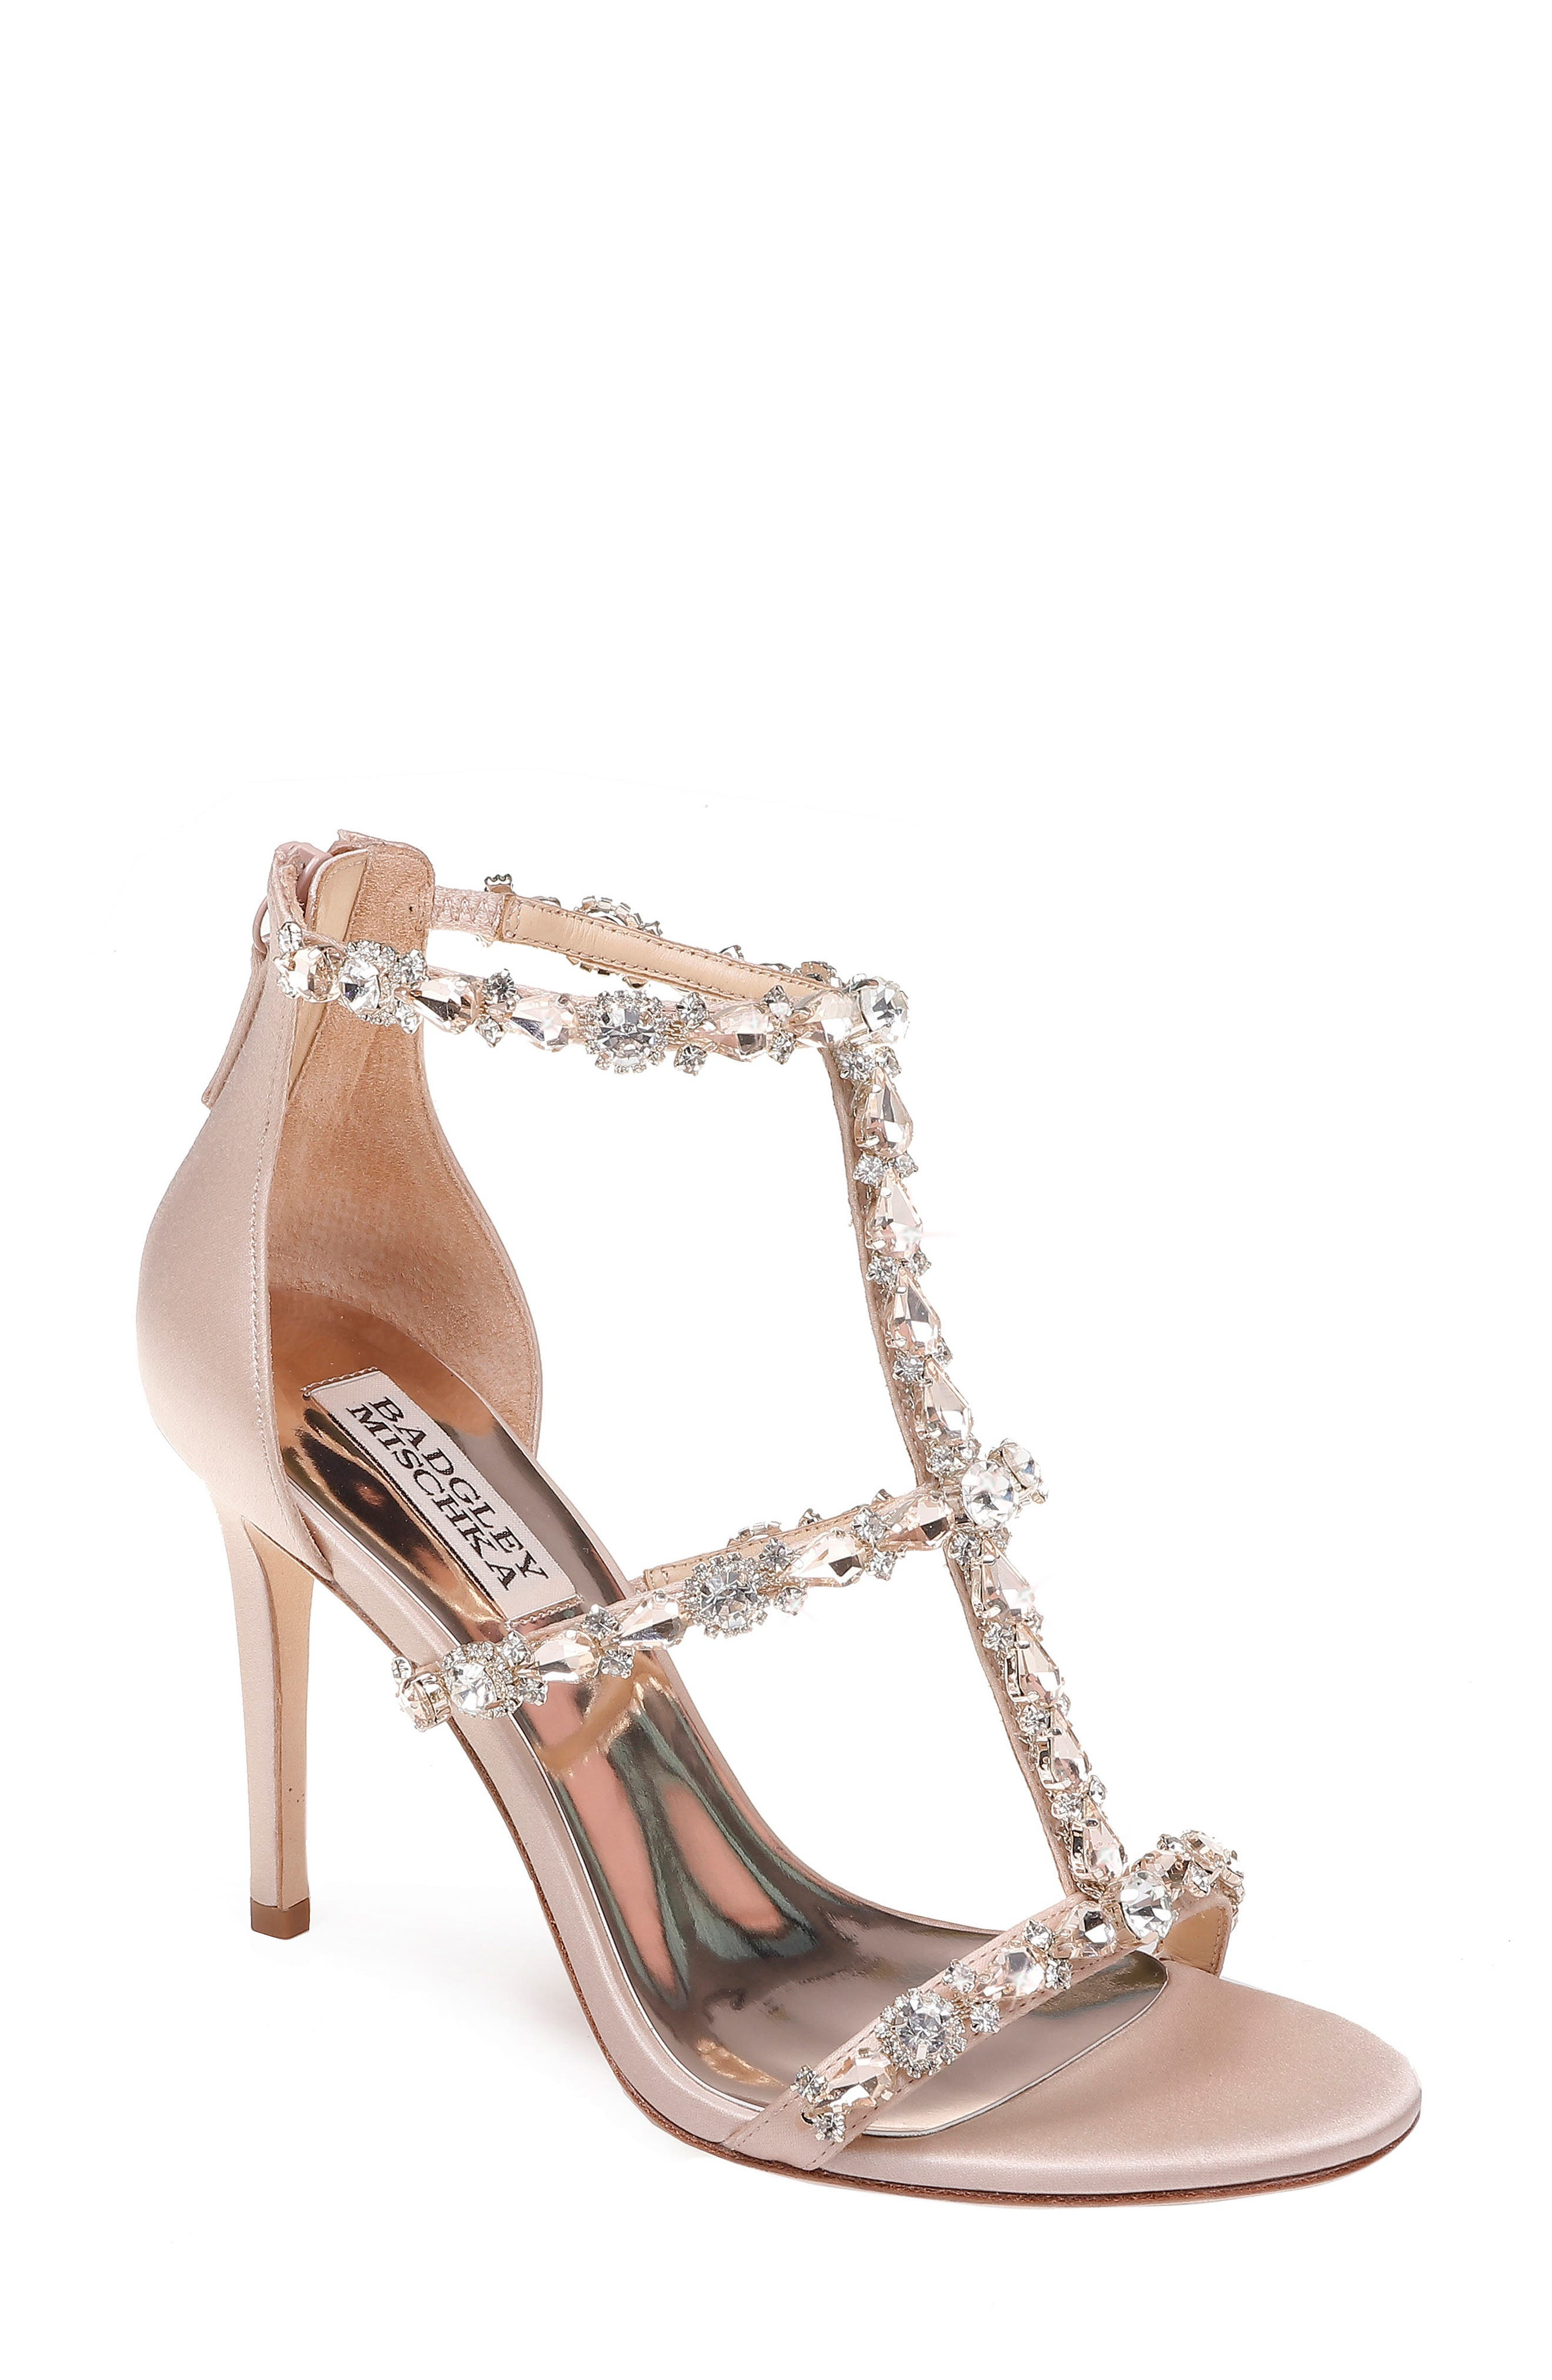 BADGLEY MISCHKA COLLECTION,                             Badgley Mischka Querida Embellished Sandal,                             Main thumbnail 1, color,                             LATTE SATIN